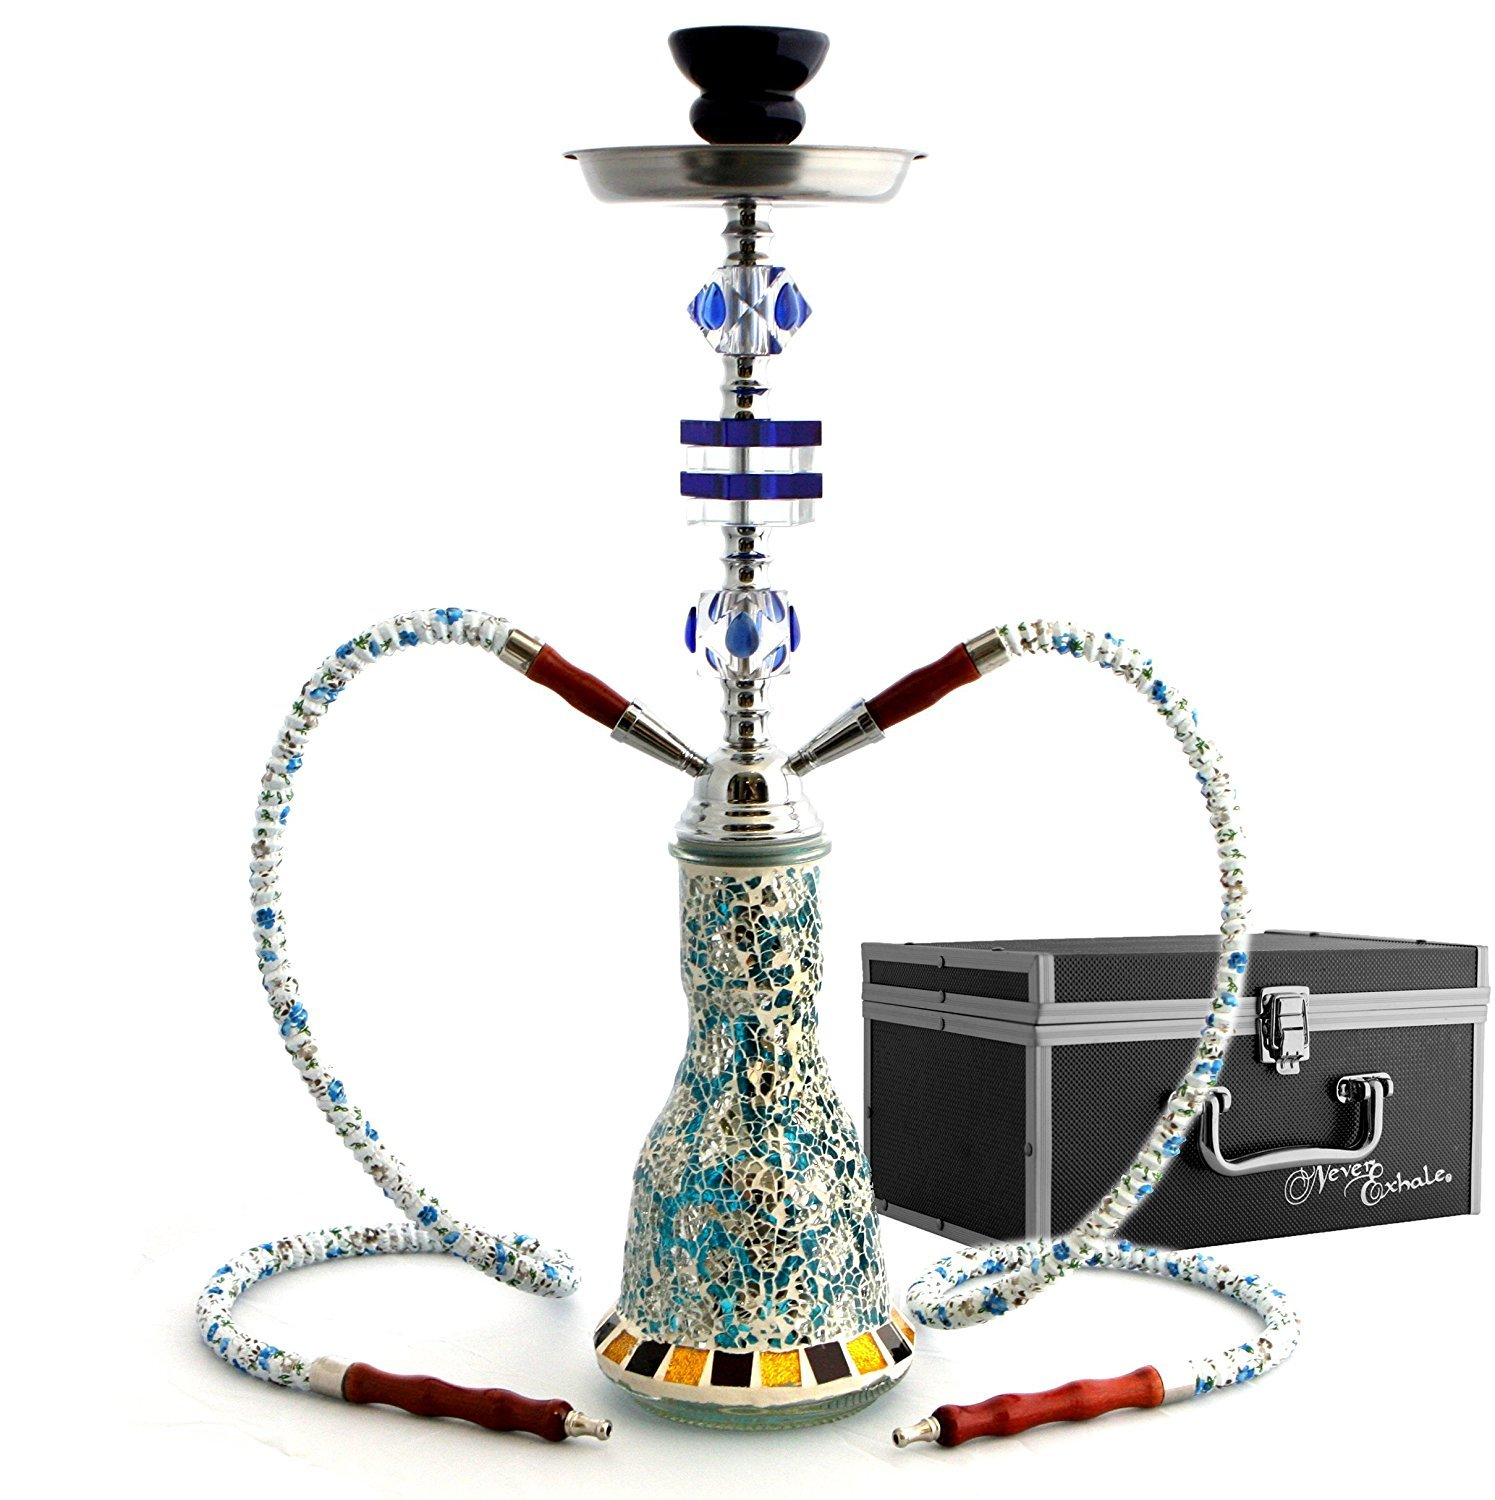 GStar NeverXhale Deluxe Series: 20'' 2 Hose Hookah Shisha Complete Set w/ Travel Case - Mosaic Tile Art Glass Vase (Blue w/ Case) by GStar